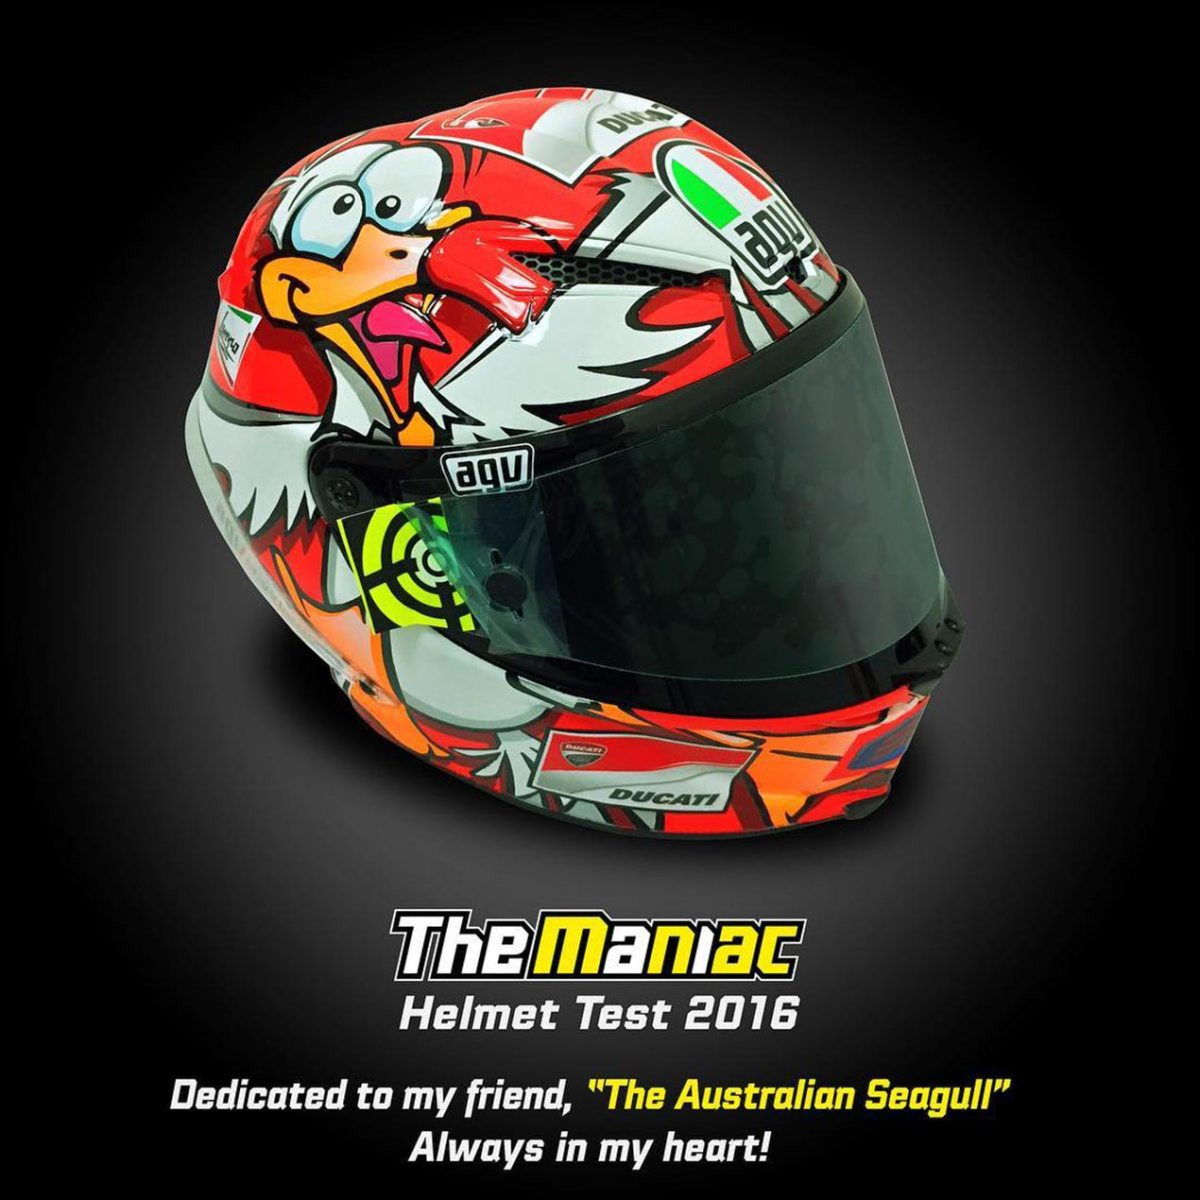 Iannone Pays Homage to Dead Seagull with Winter Helmet